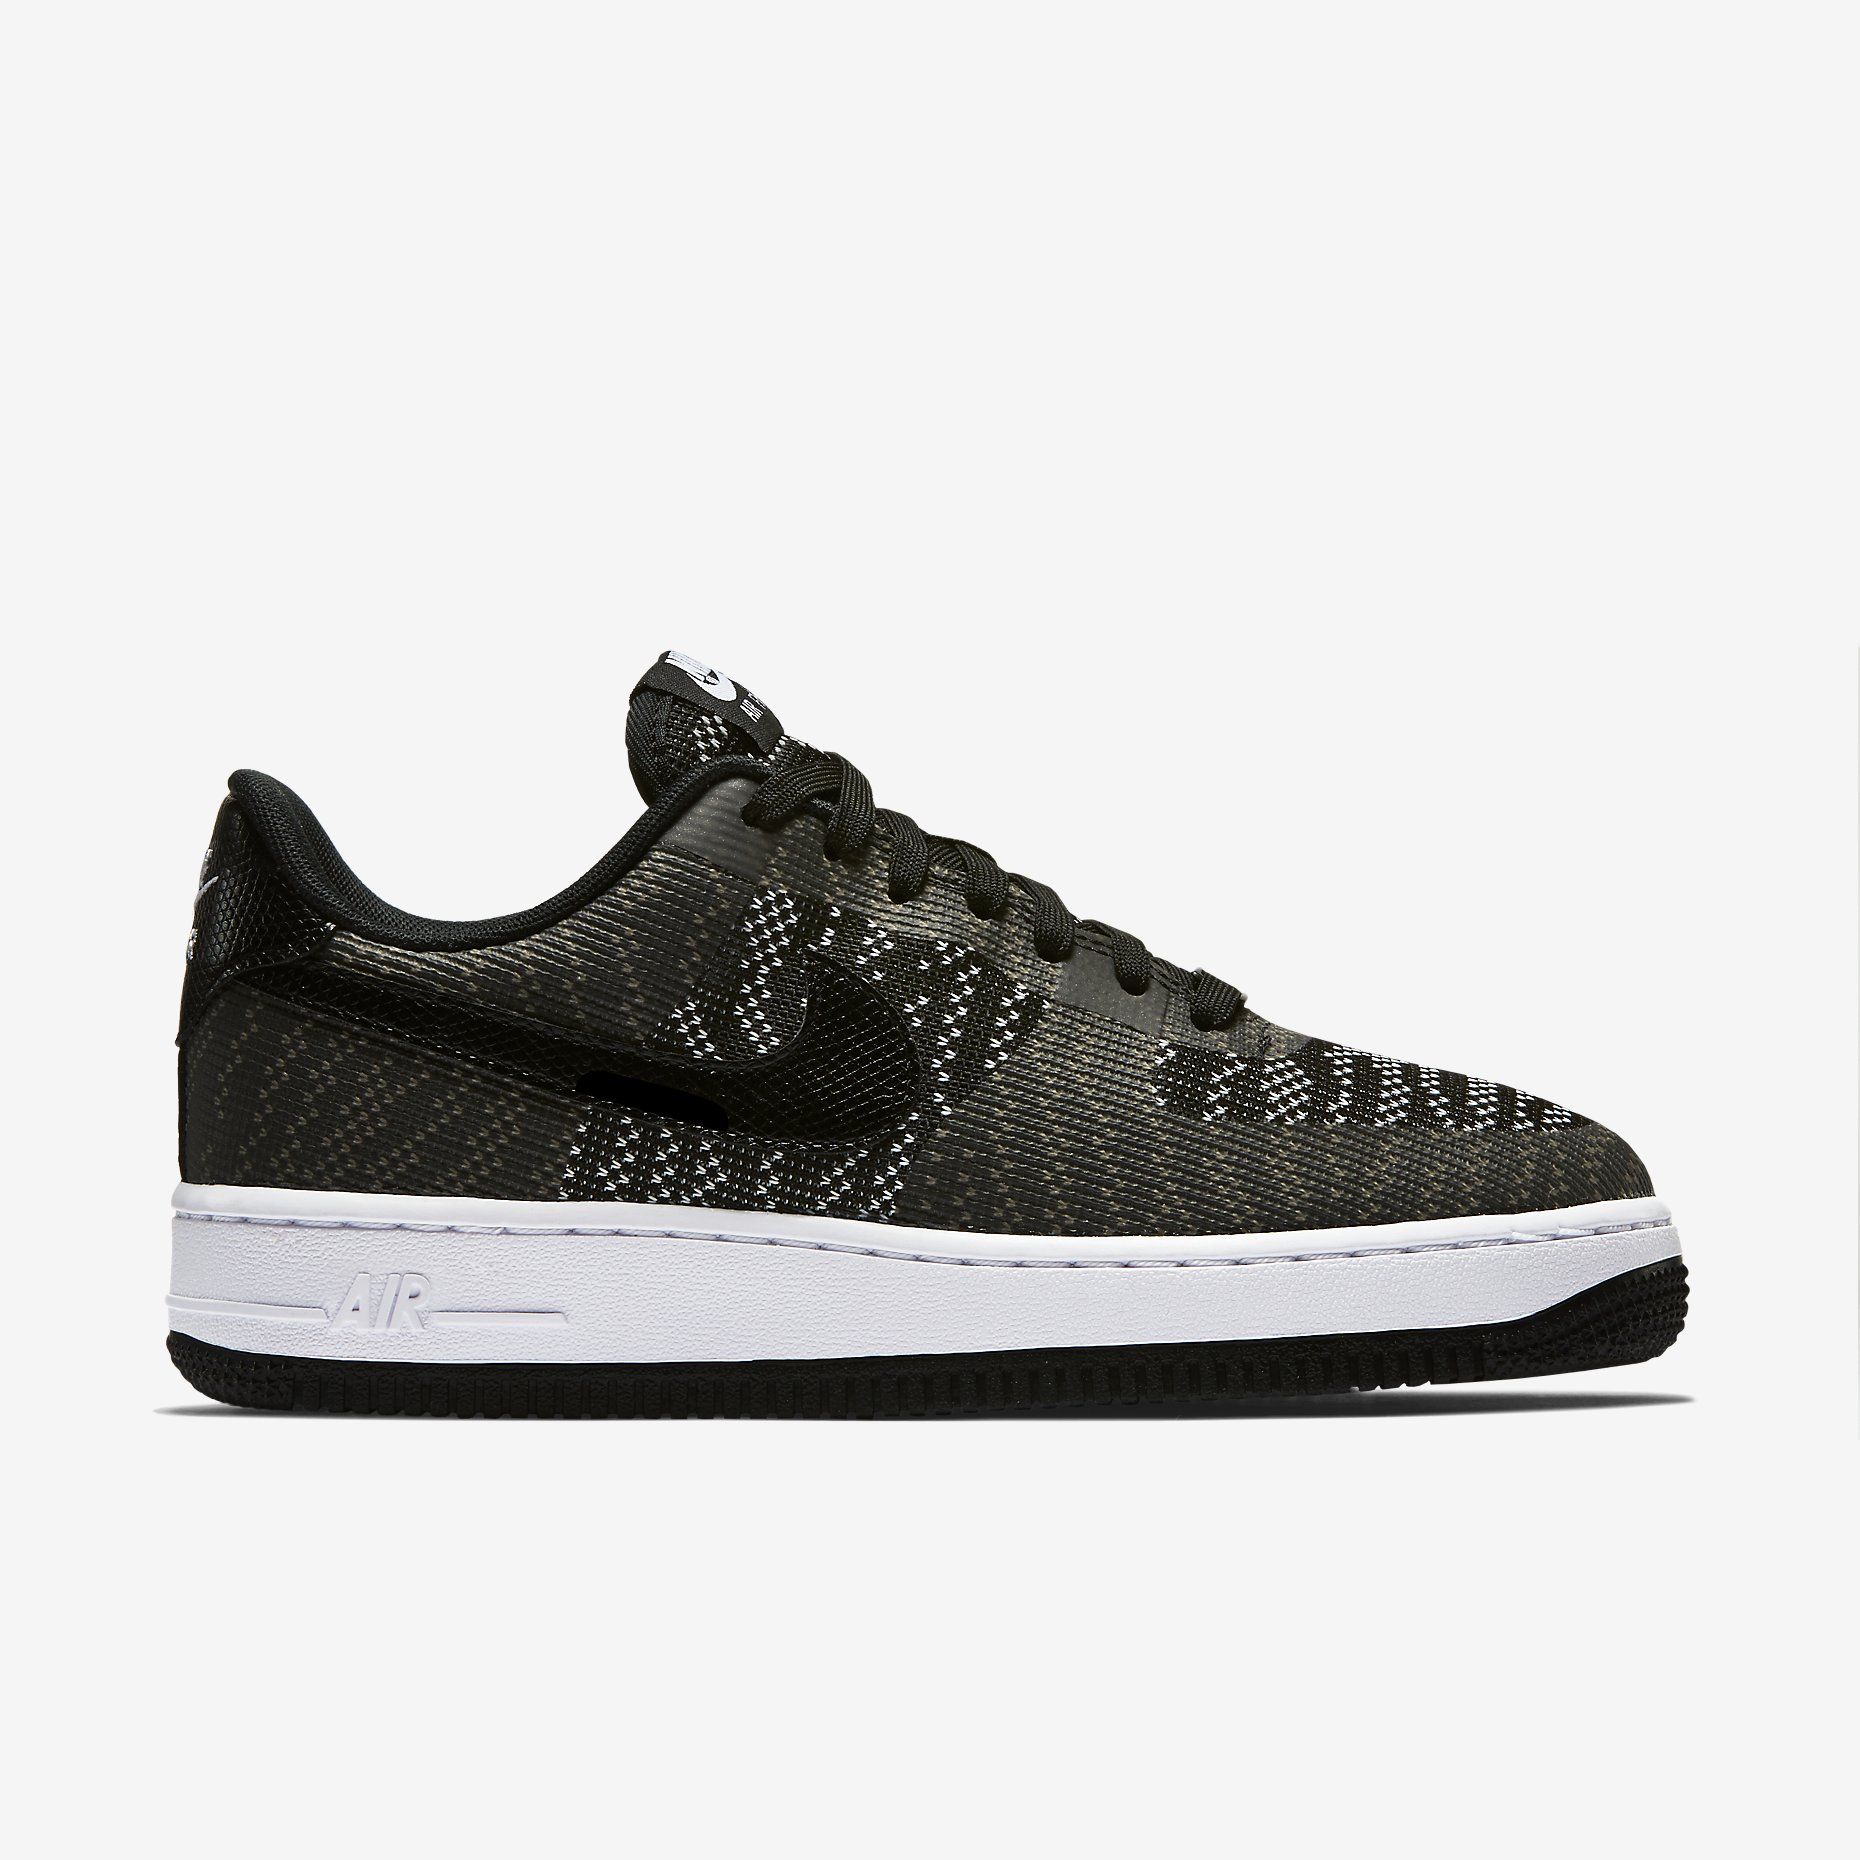 nike air force 1 07 knit jacquard women's shoe nz